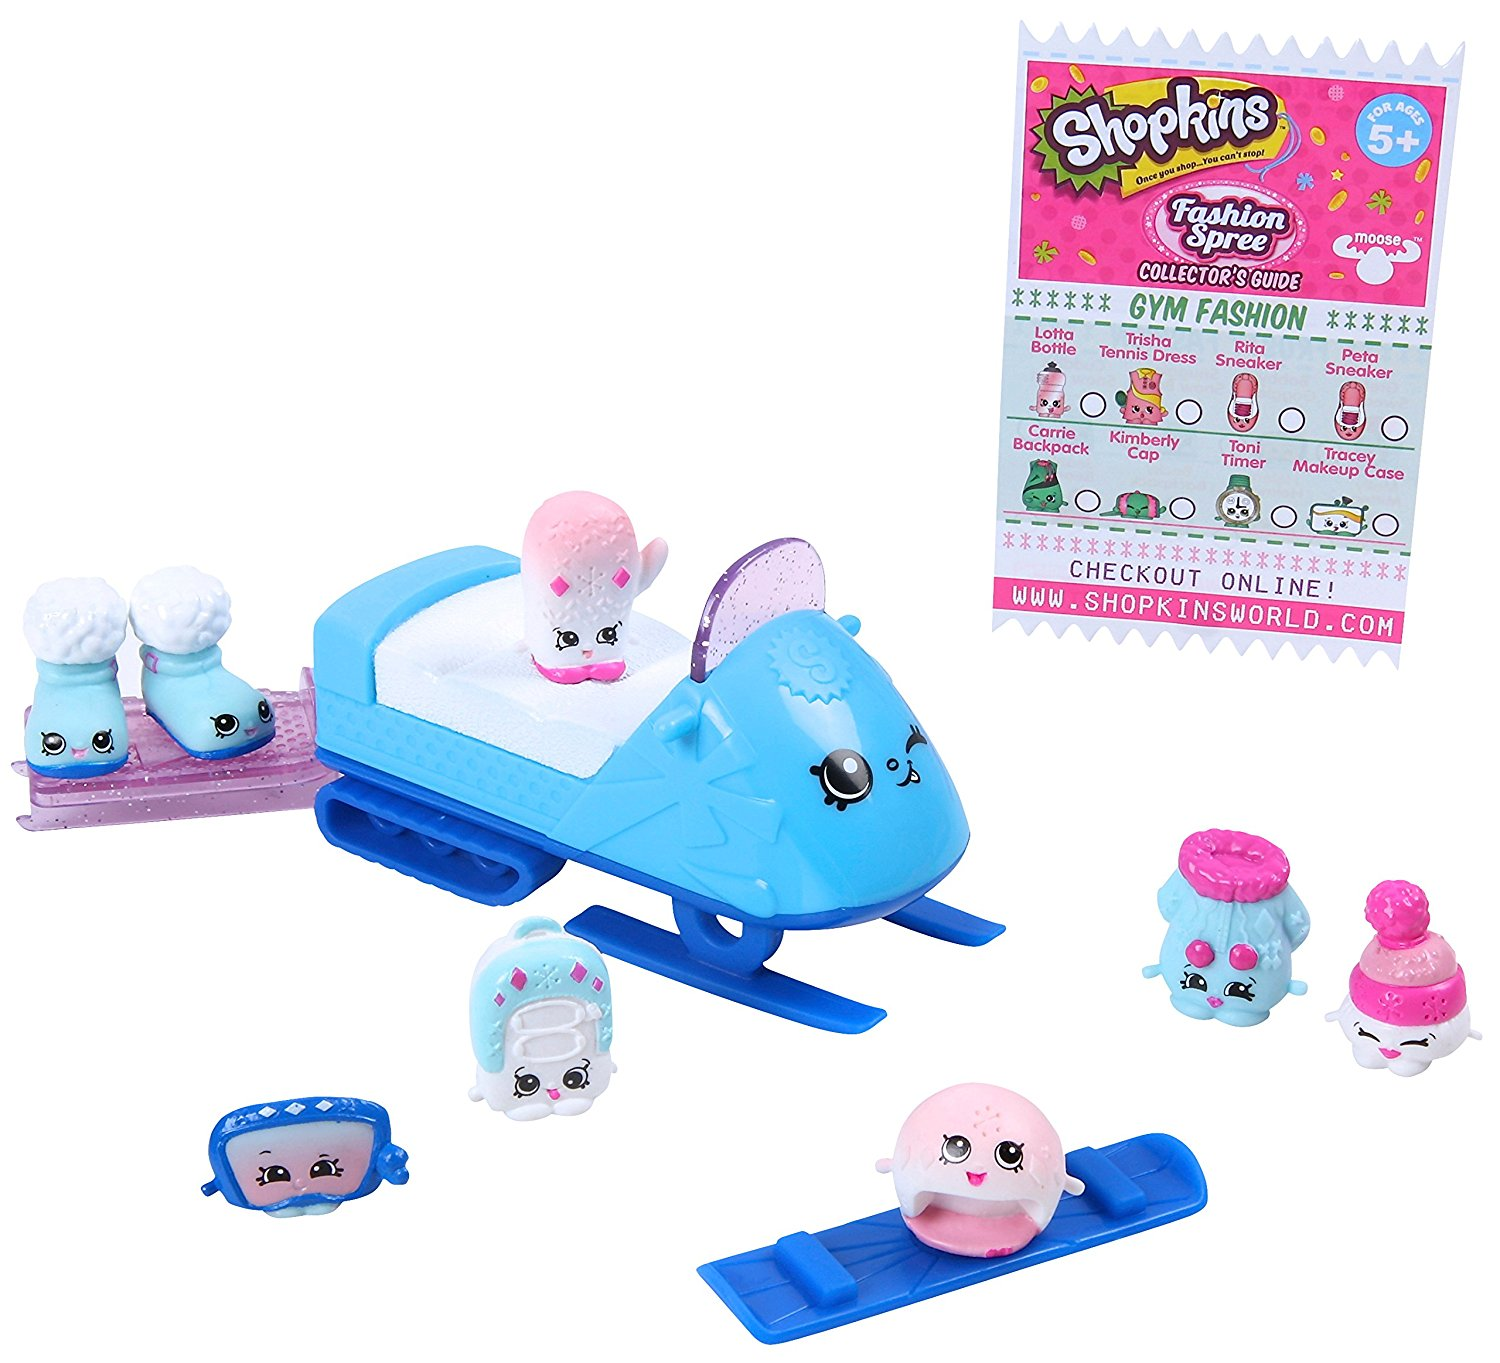 Shopkins Frosty Fashion Collection